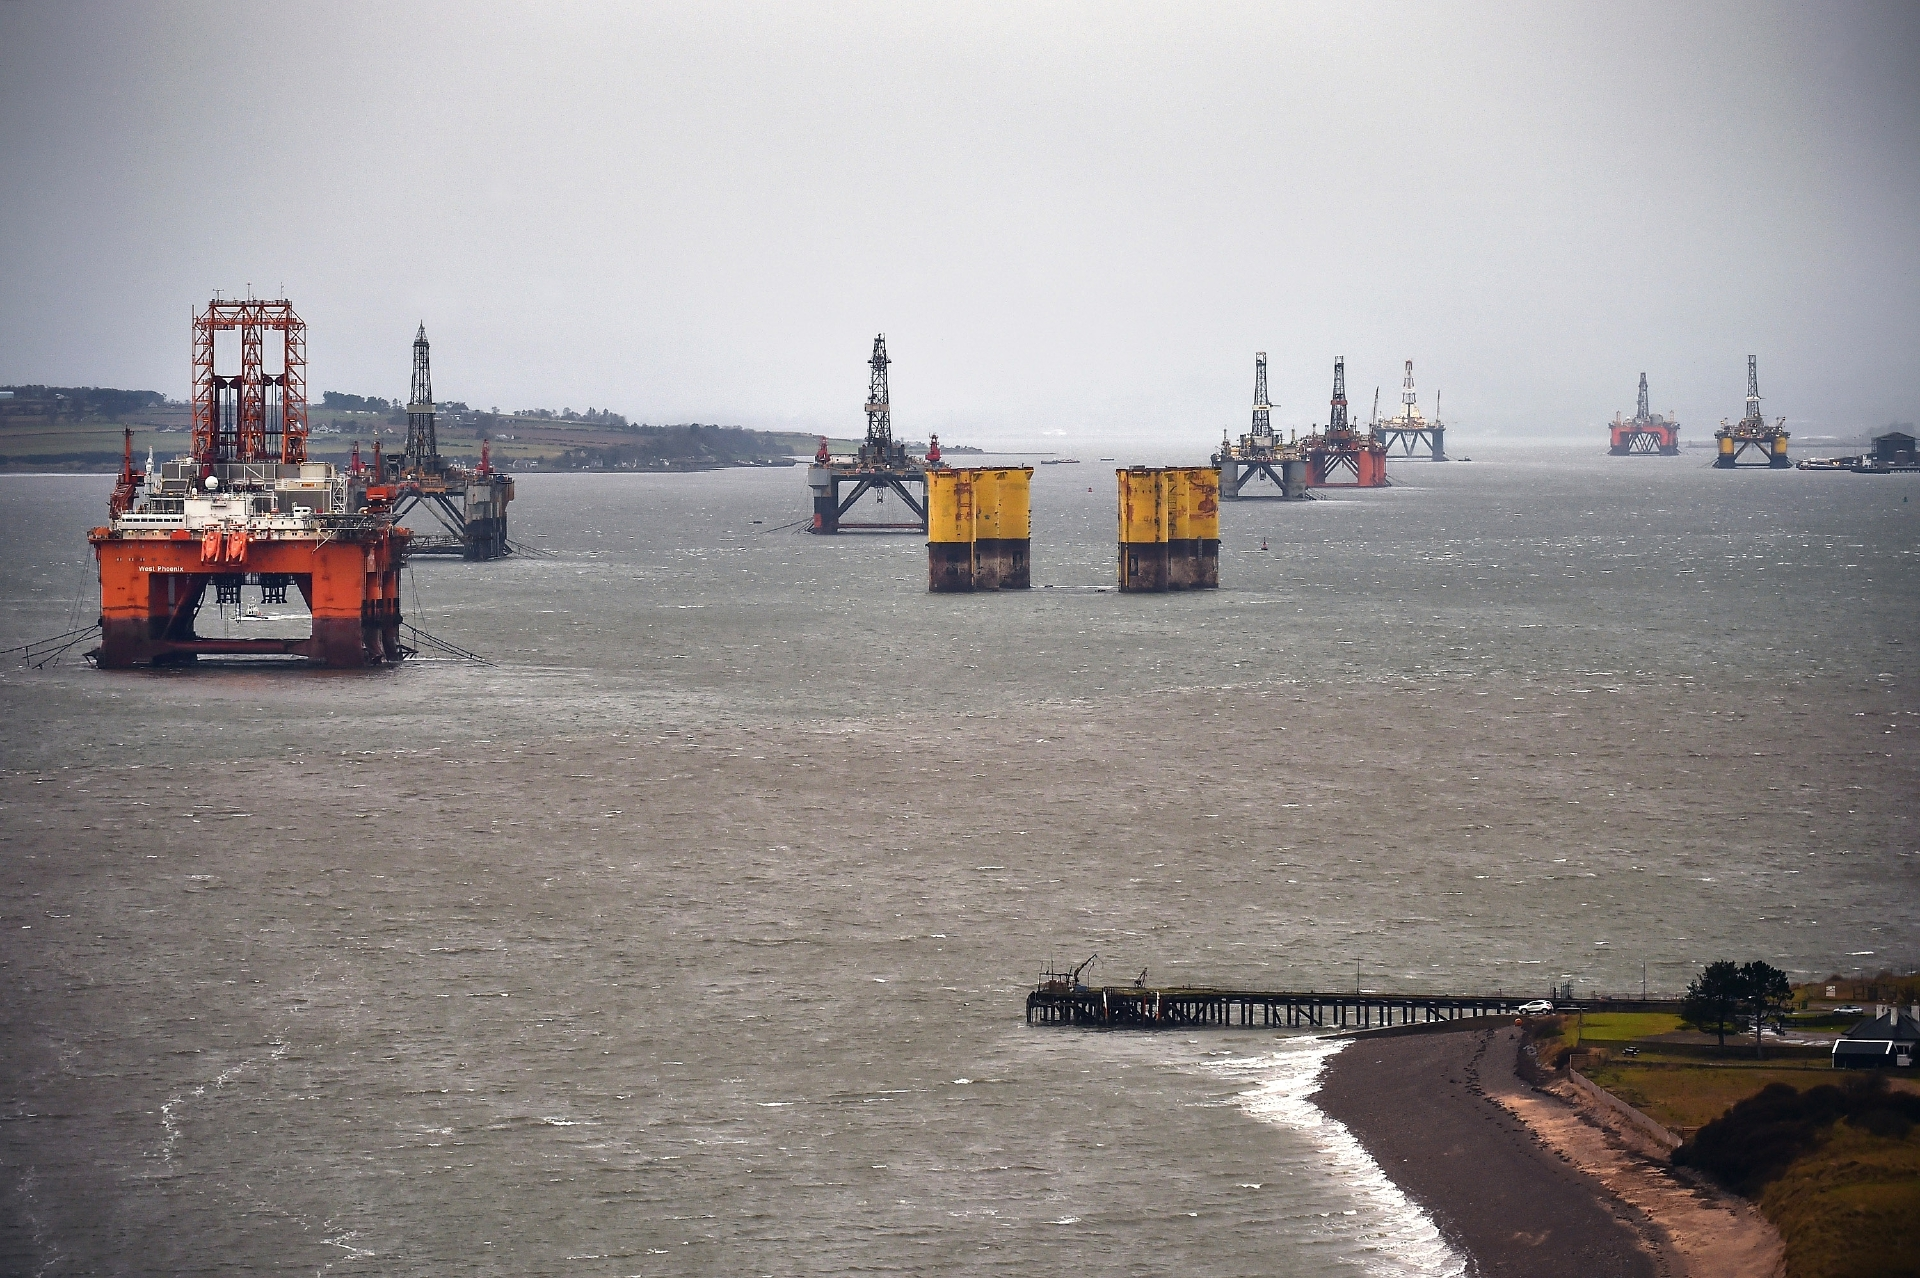 The North Sea has a two year window to find a profitable future, according to PwC.